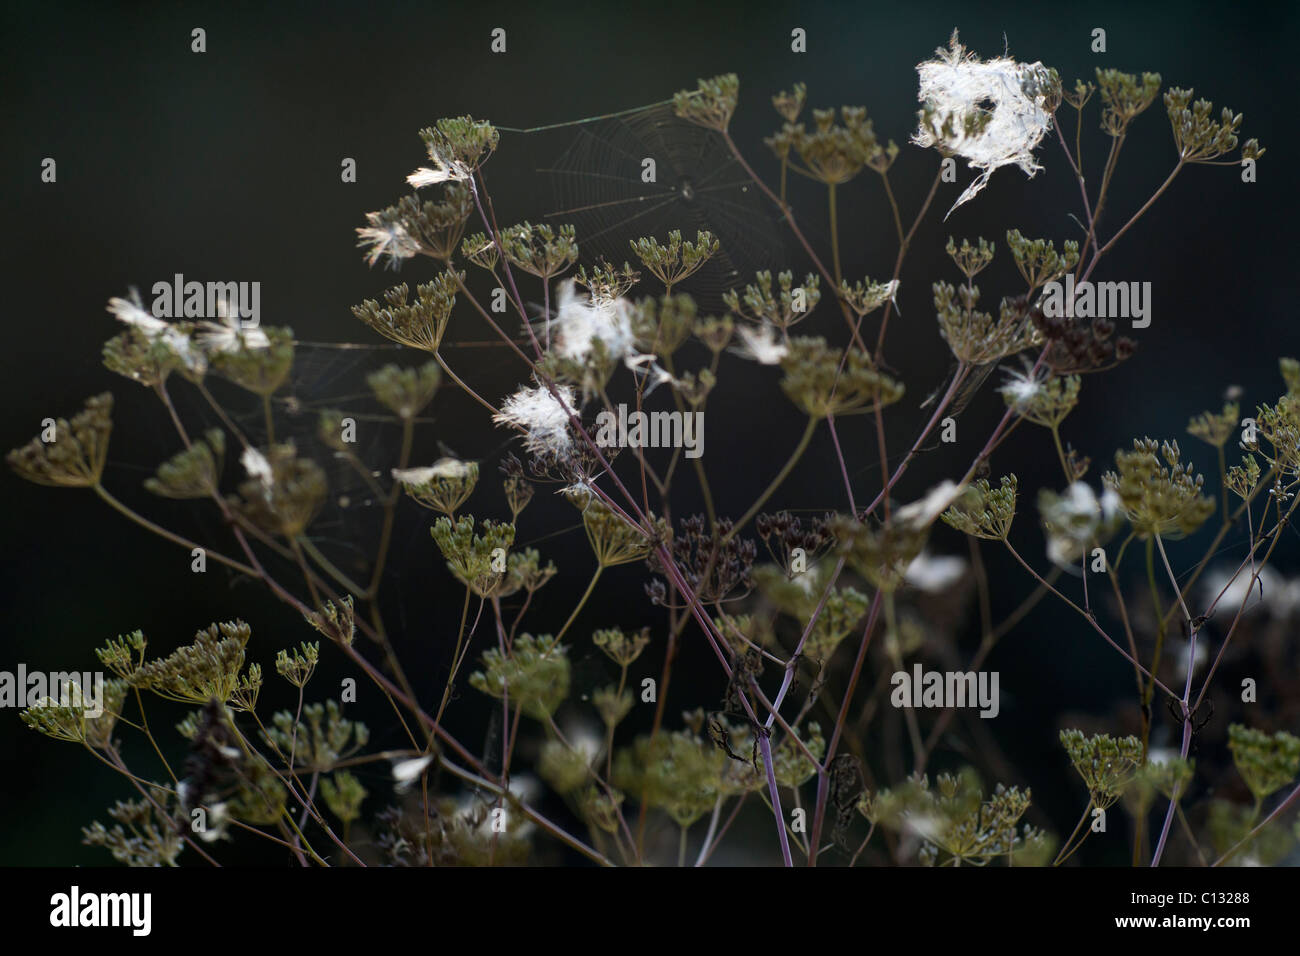 Poison Hemlock (Conium maculatum), seed heads and spider's webs, Lower Saxony, Germany - Stock Image